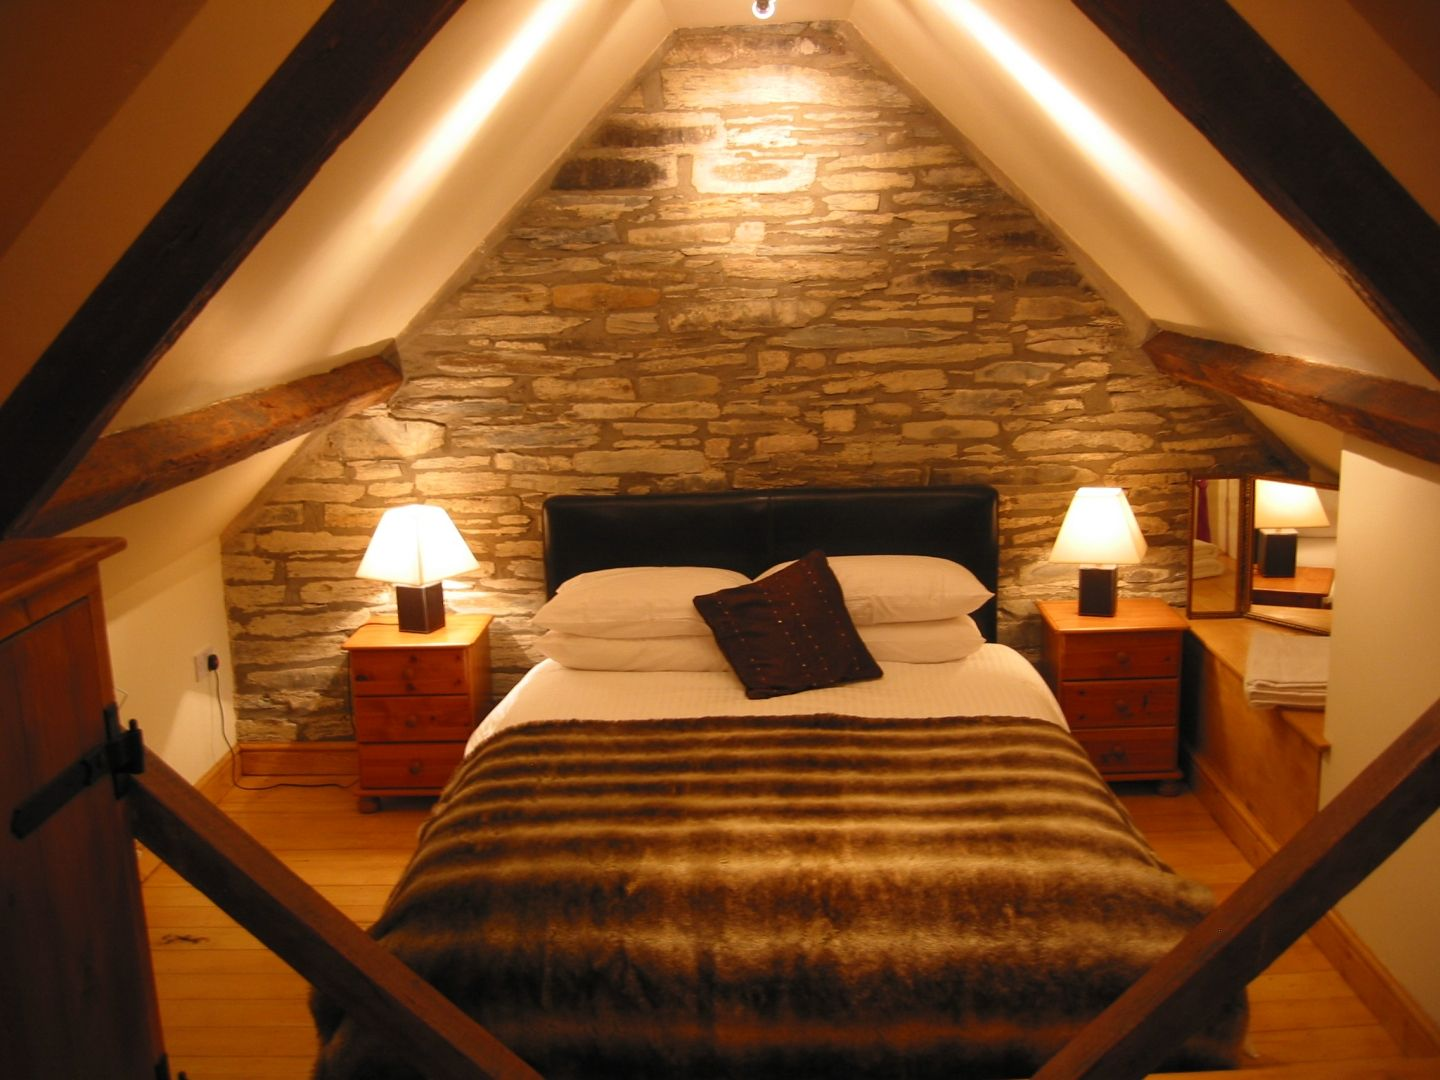 Attic Design Ideas gorgeous and moody attic bedroom decorated with lots of rustic elements Bedroom Attractive And Functional Attic Bedroom Design Ideas To